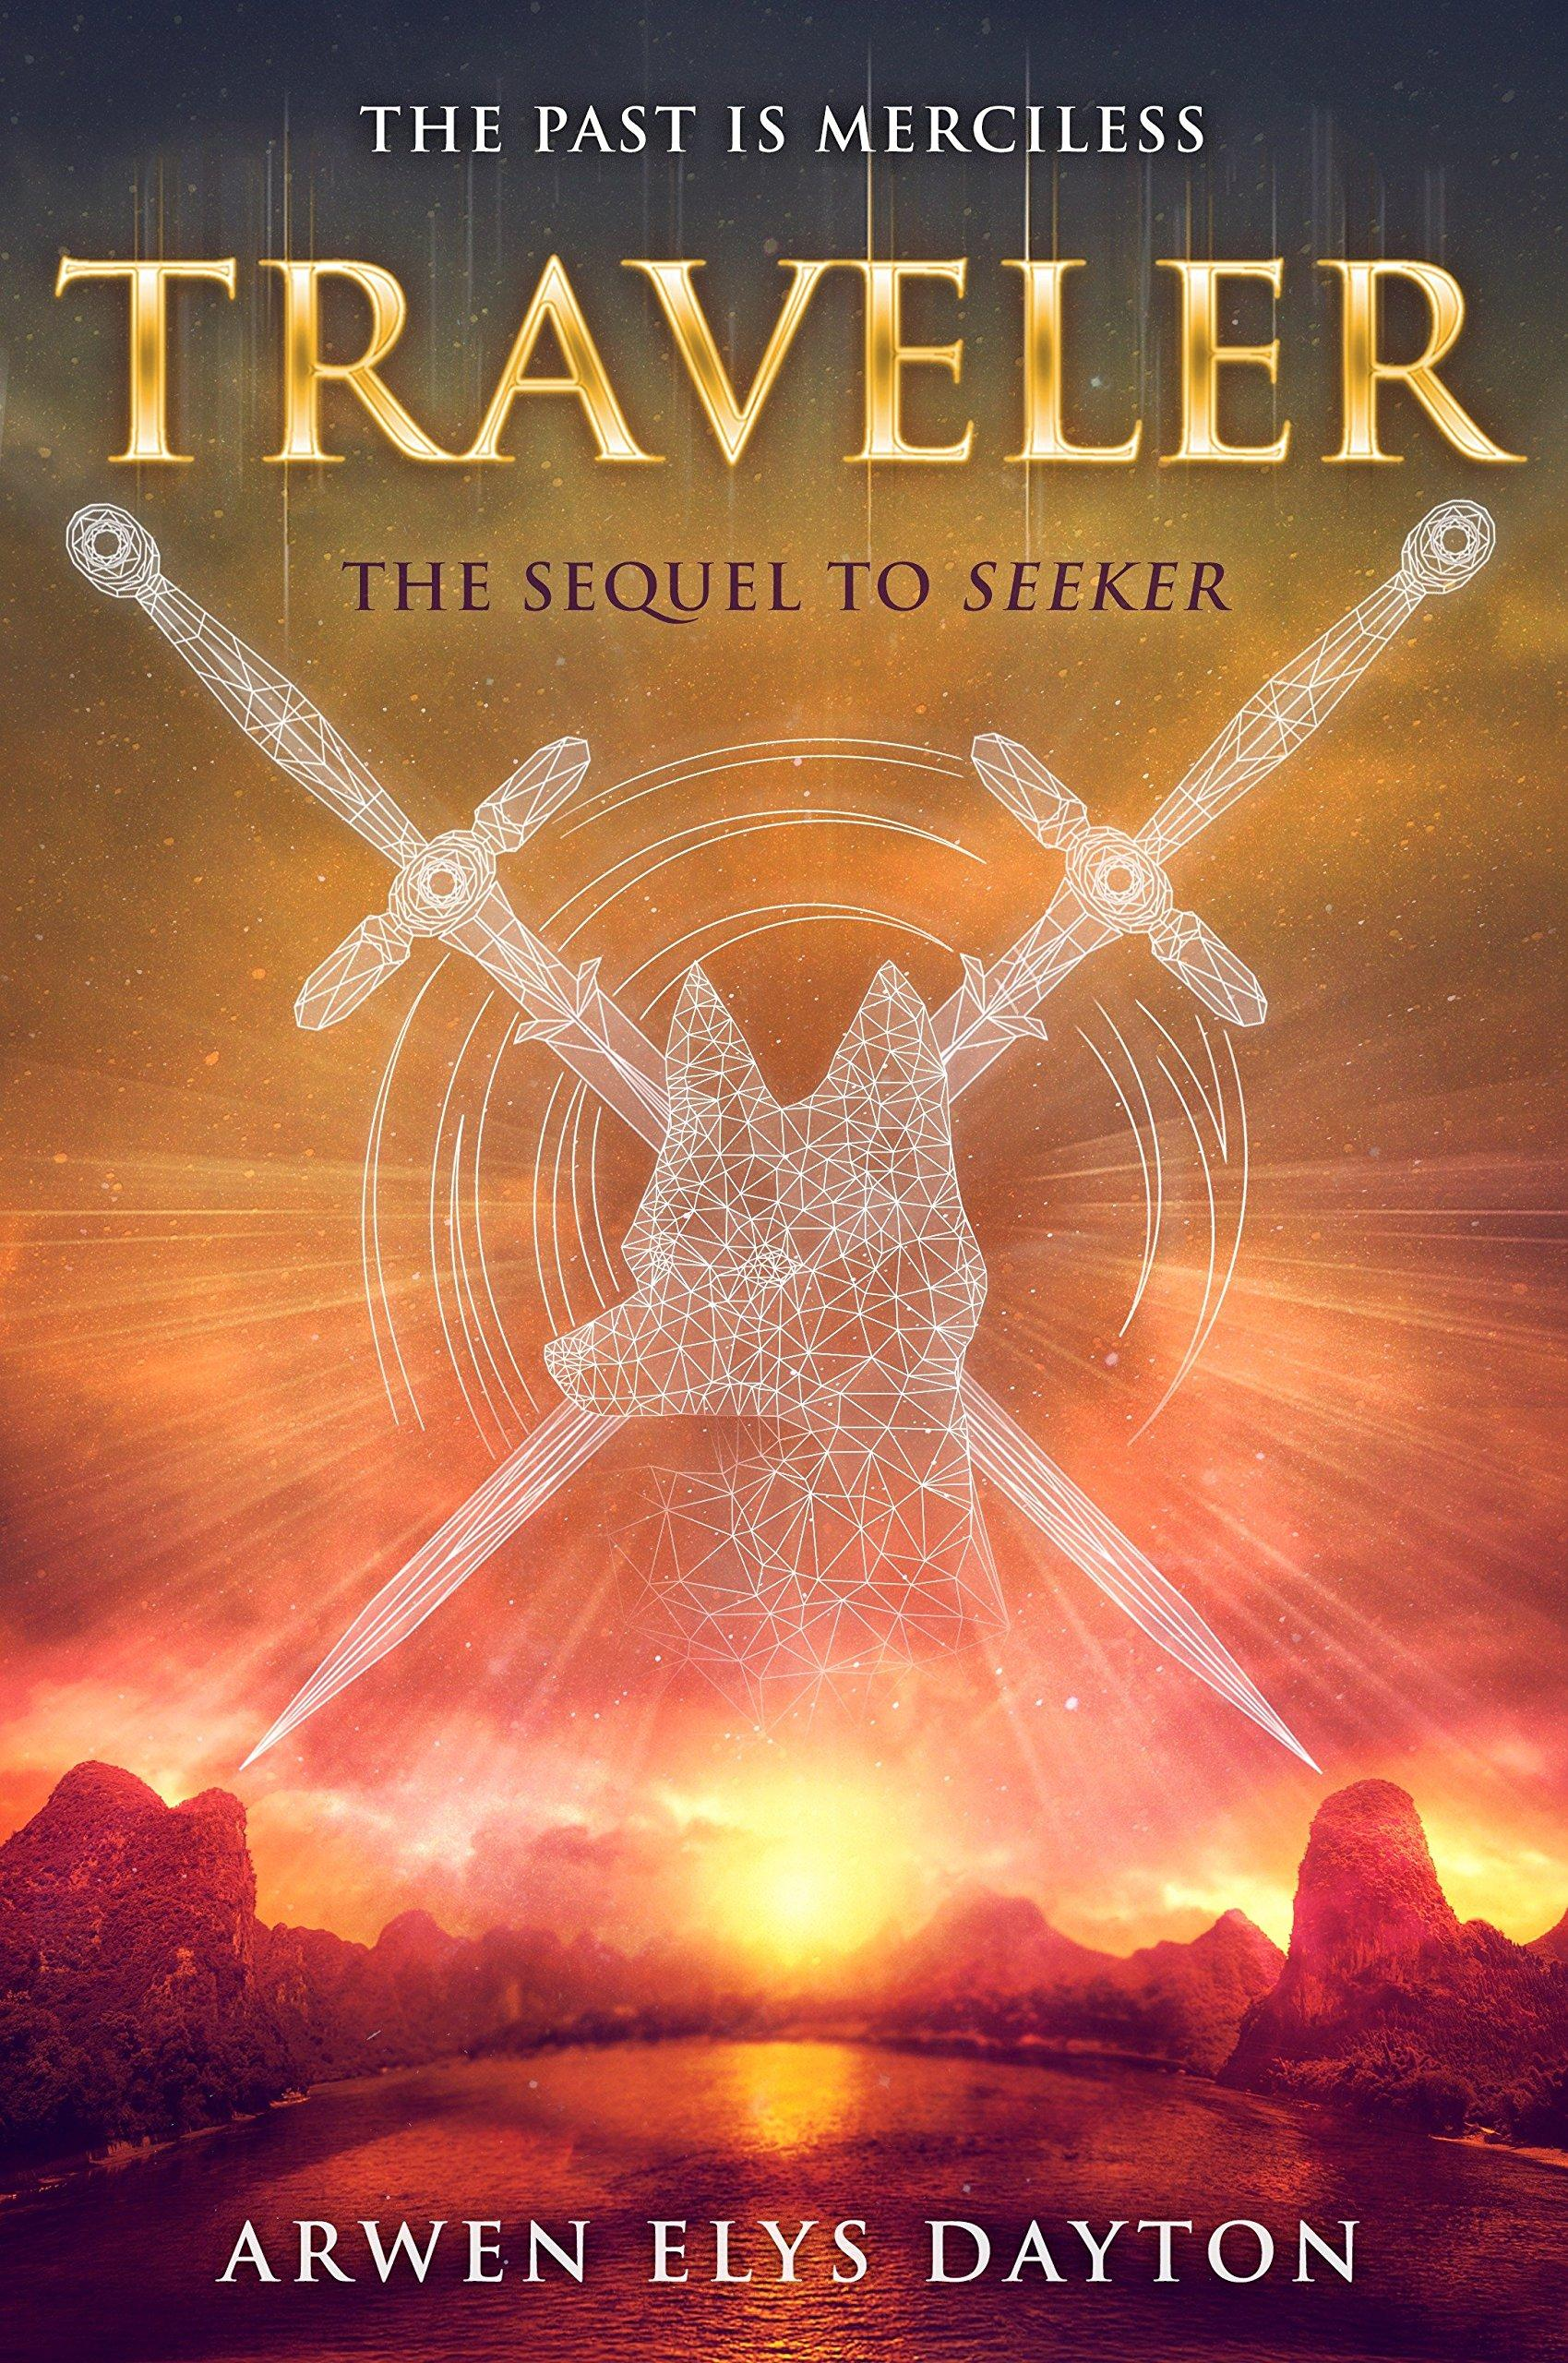 [hardcover] Traveler By Hawker.